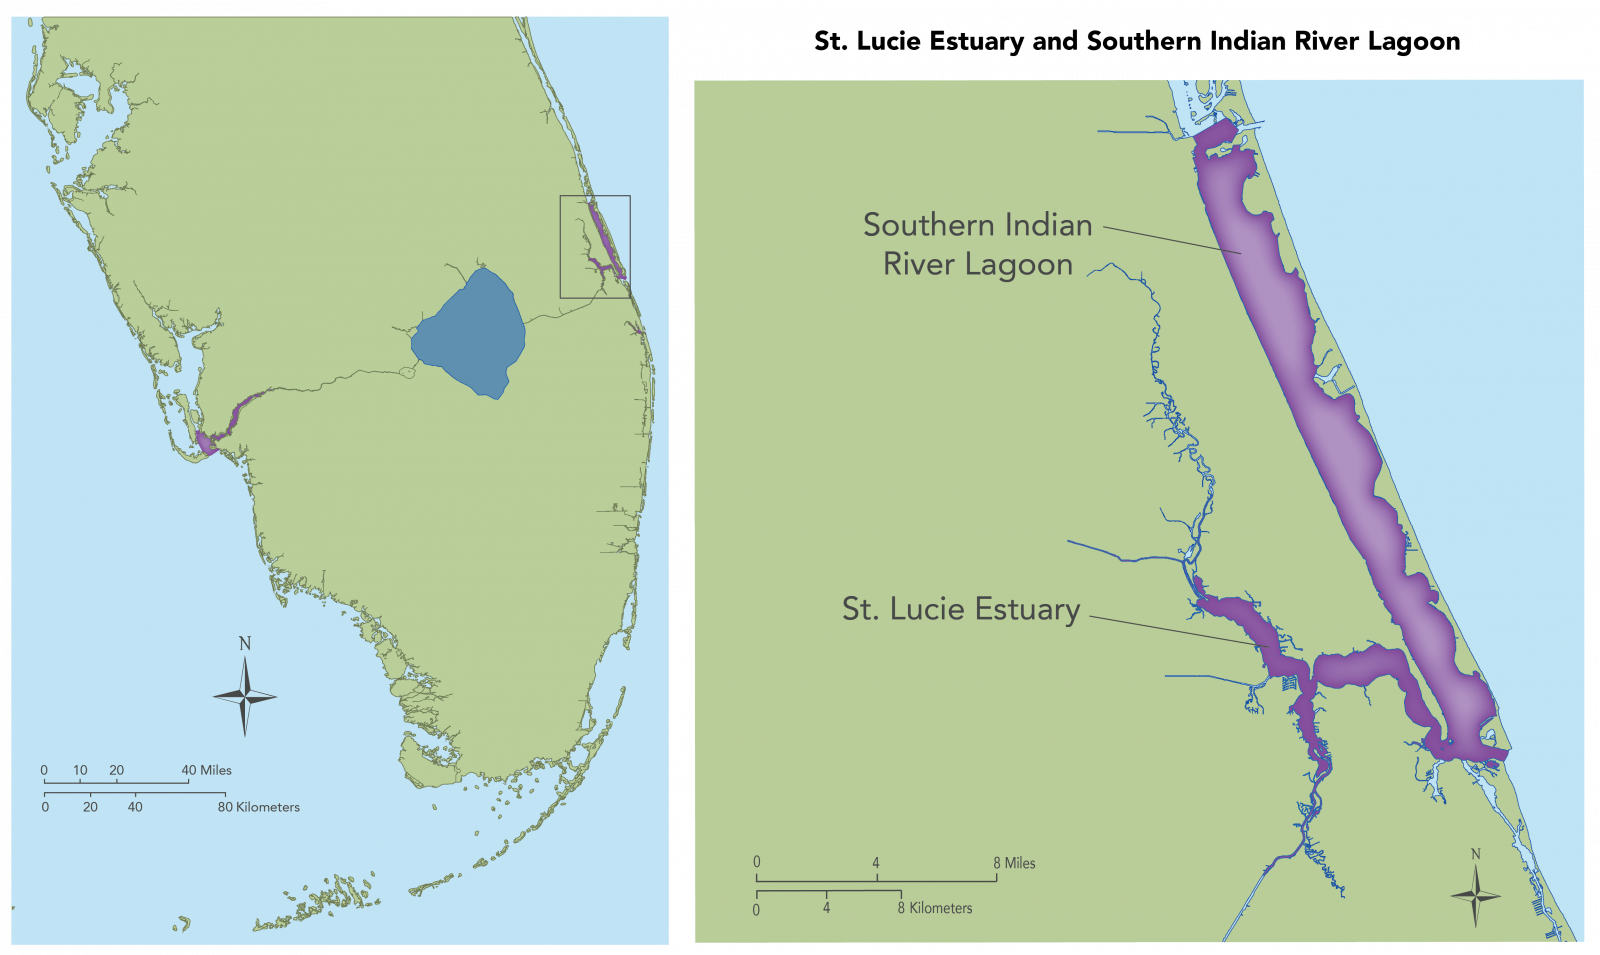 St Lucie Estuary and Southern Indian River Lagoon map showing an overview and a close up of the specific region